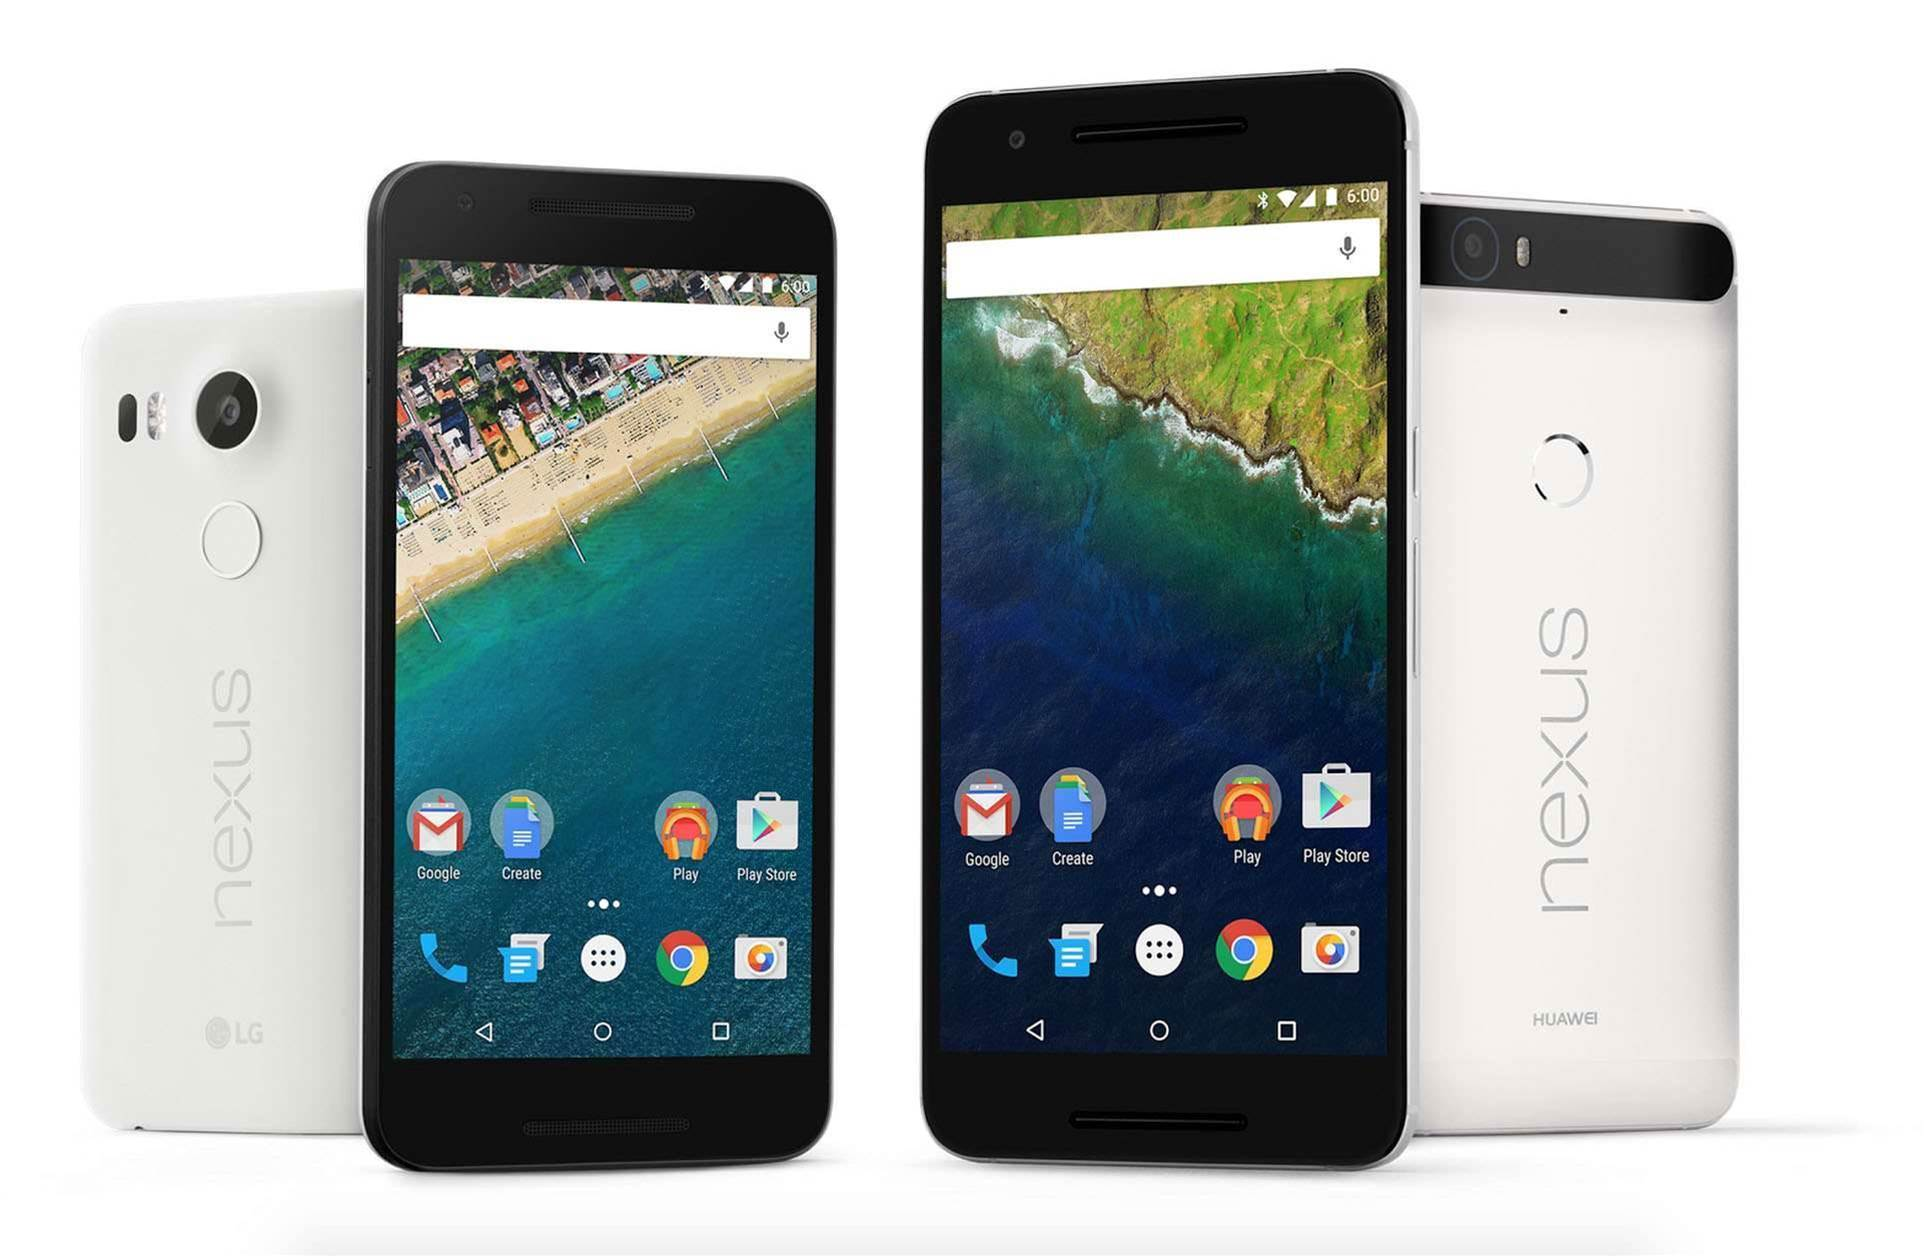 Nexus 5X release date confirmed: 22 October